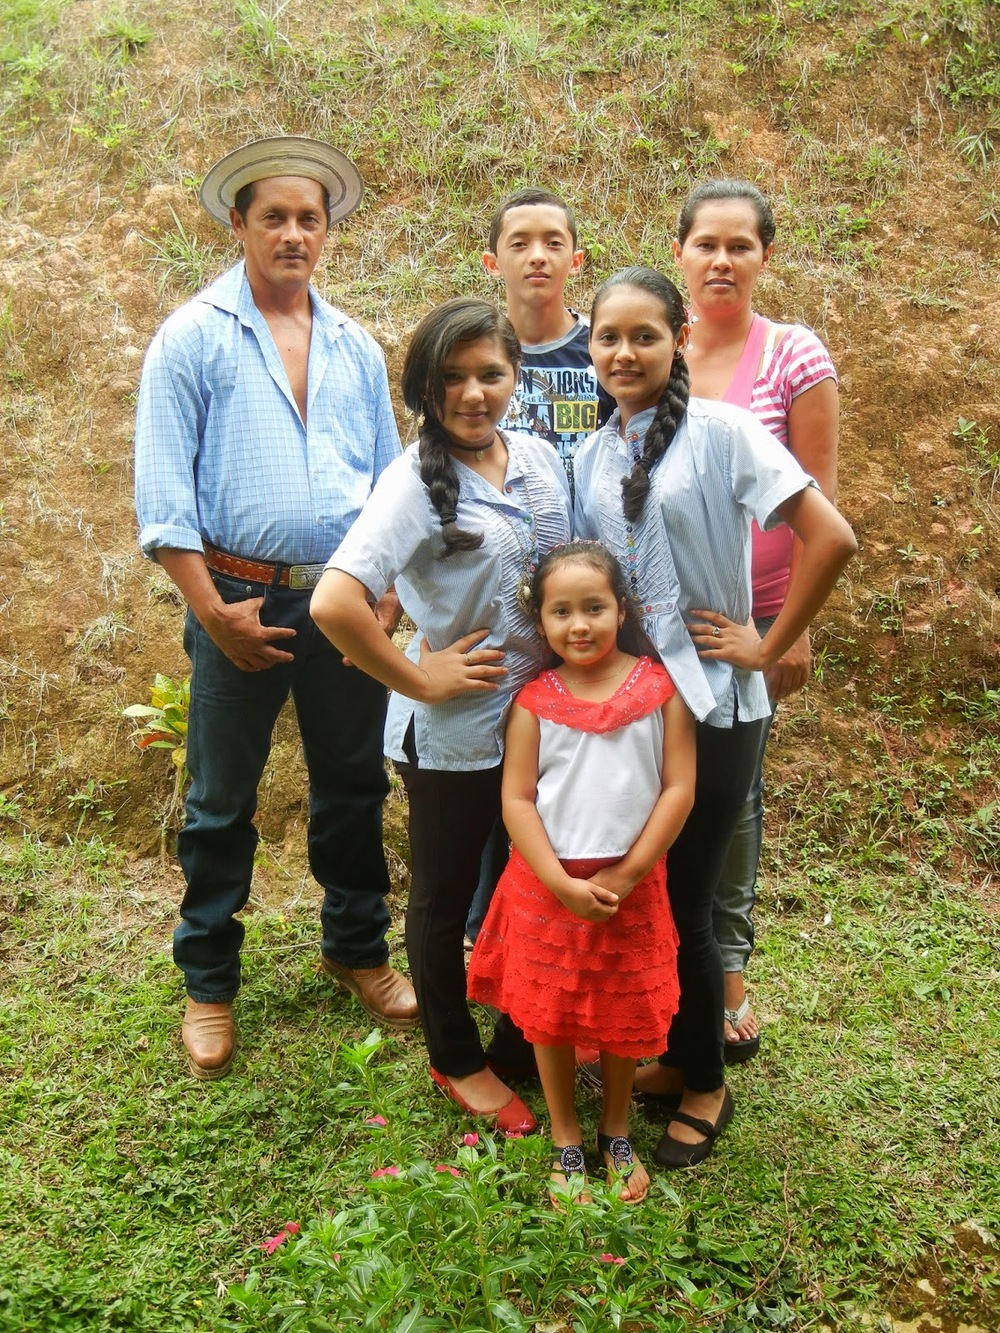 Zulai and family, dressed in their best for a school event.